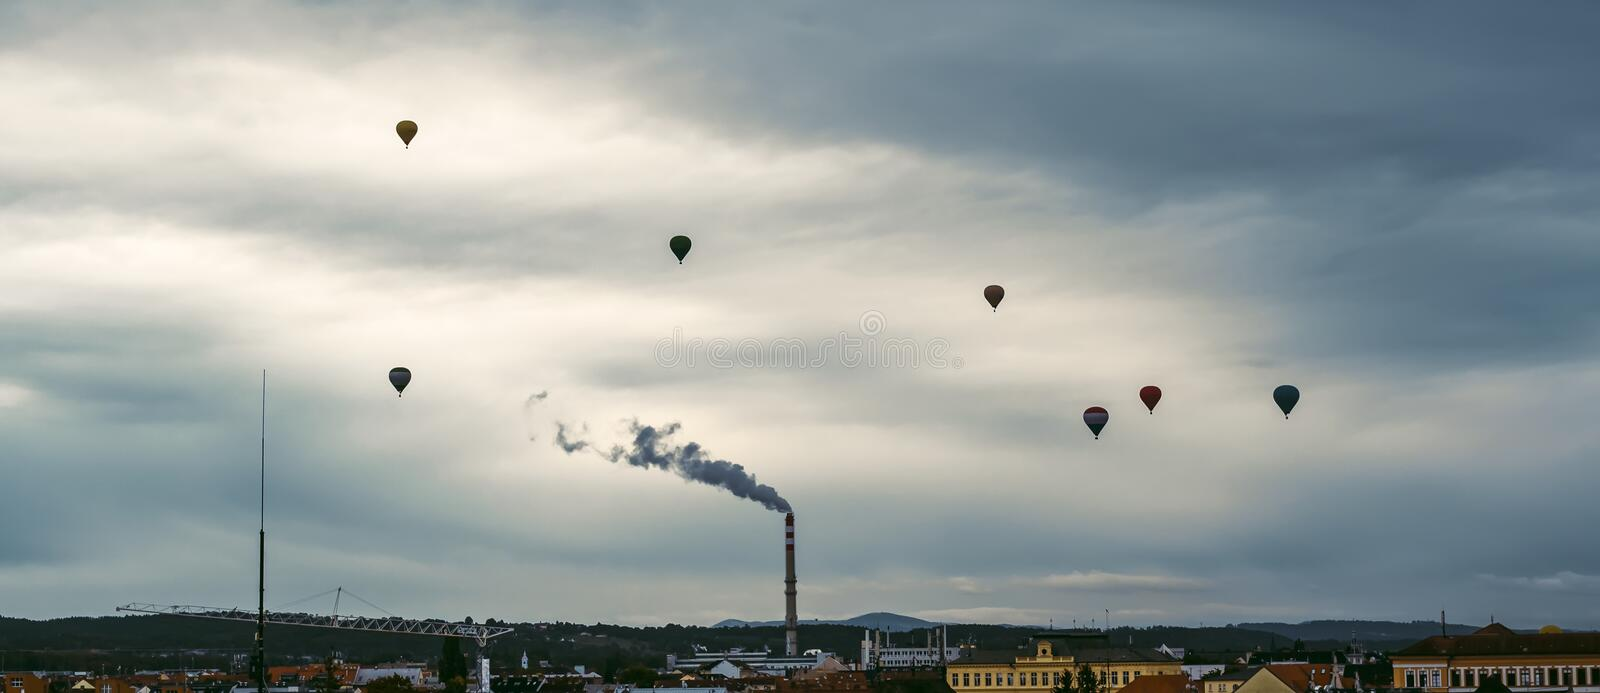 Silhouette of hot air ballons fly above city Ceske Budejovice, Czech republic stock images